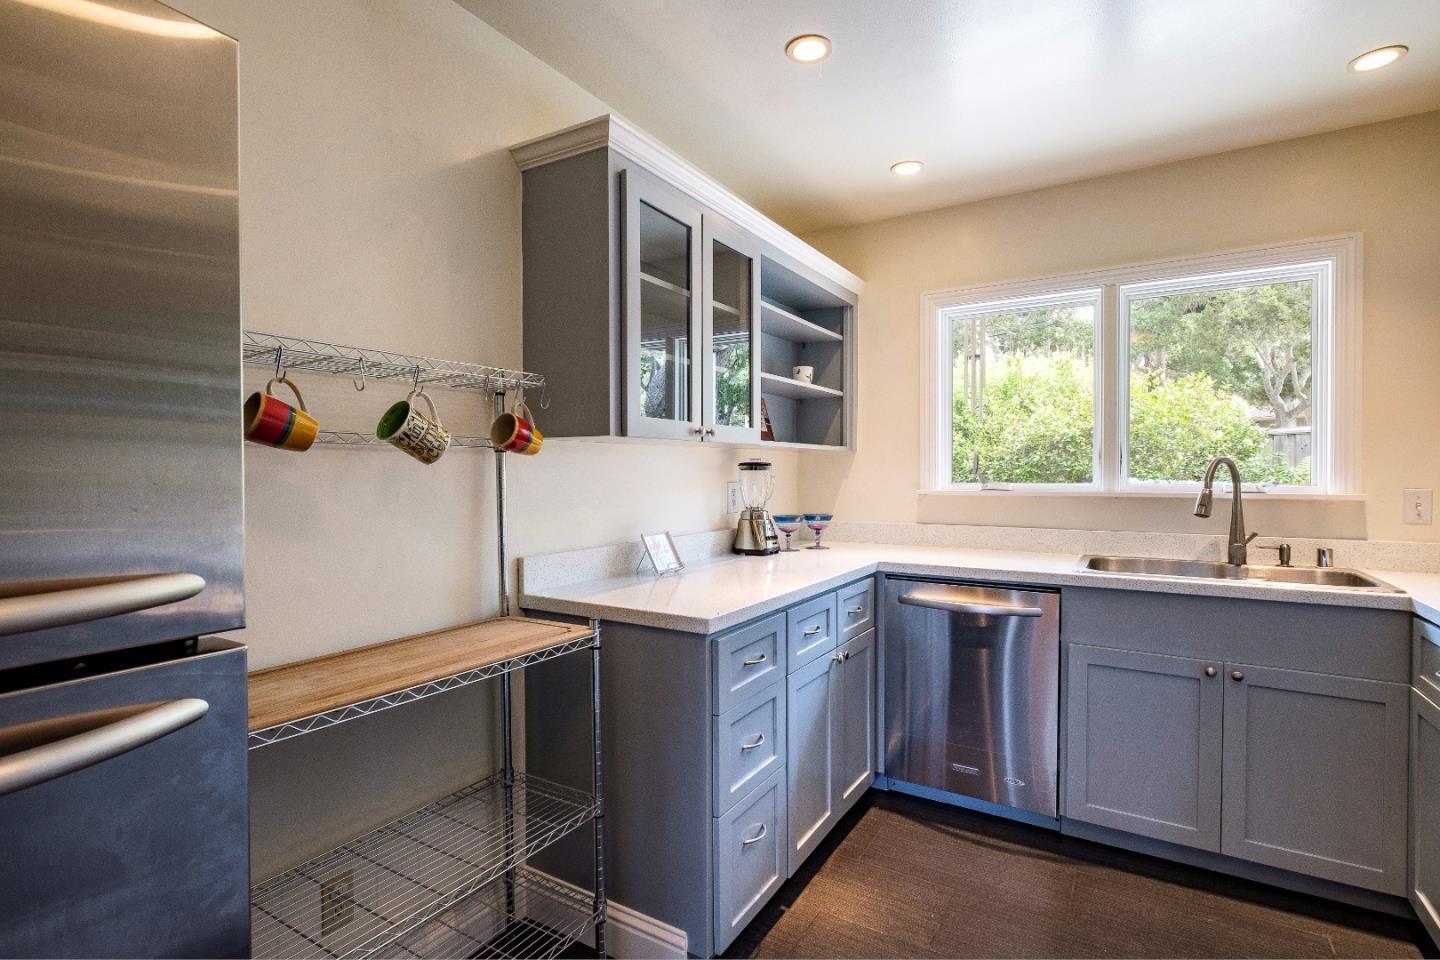 Additional photo for property listing at 1074 Mission Road 1074 Mission Road Pebble Beach, Californie 93953 États-Unis